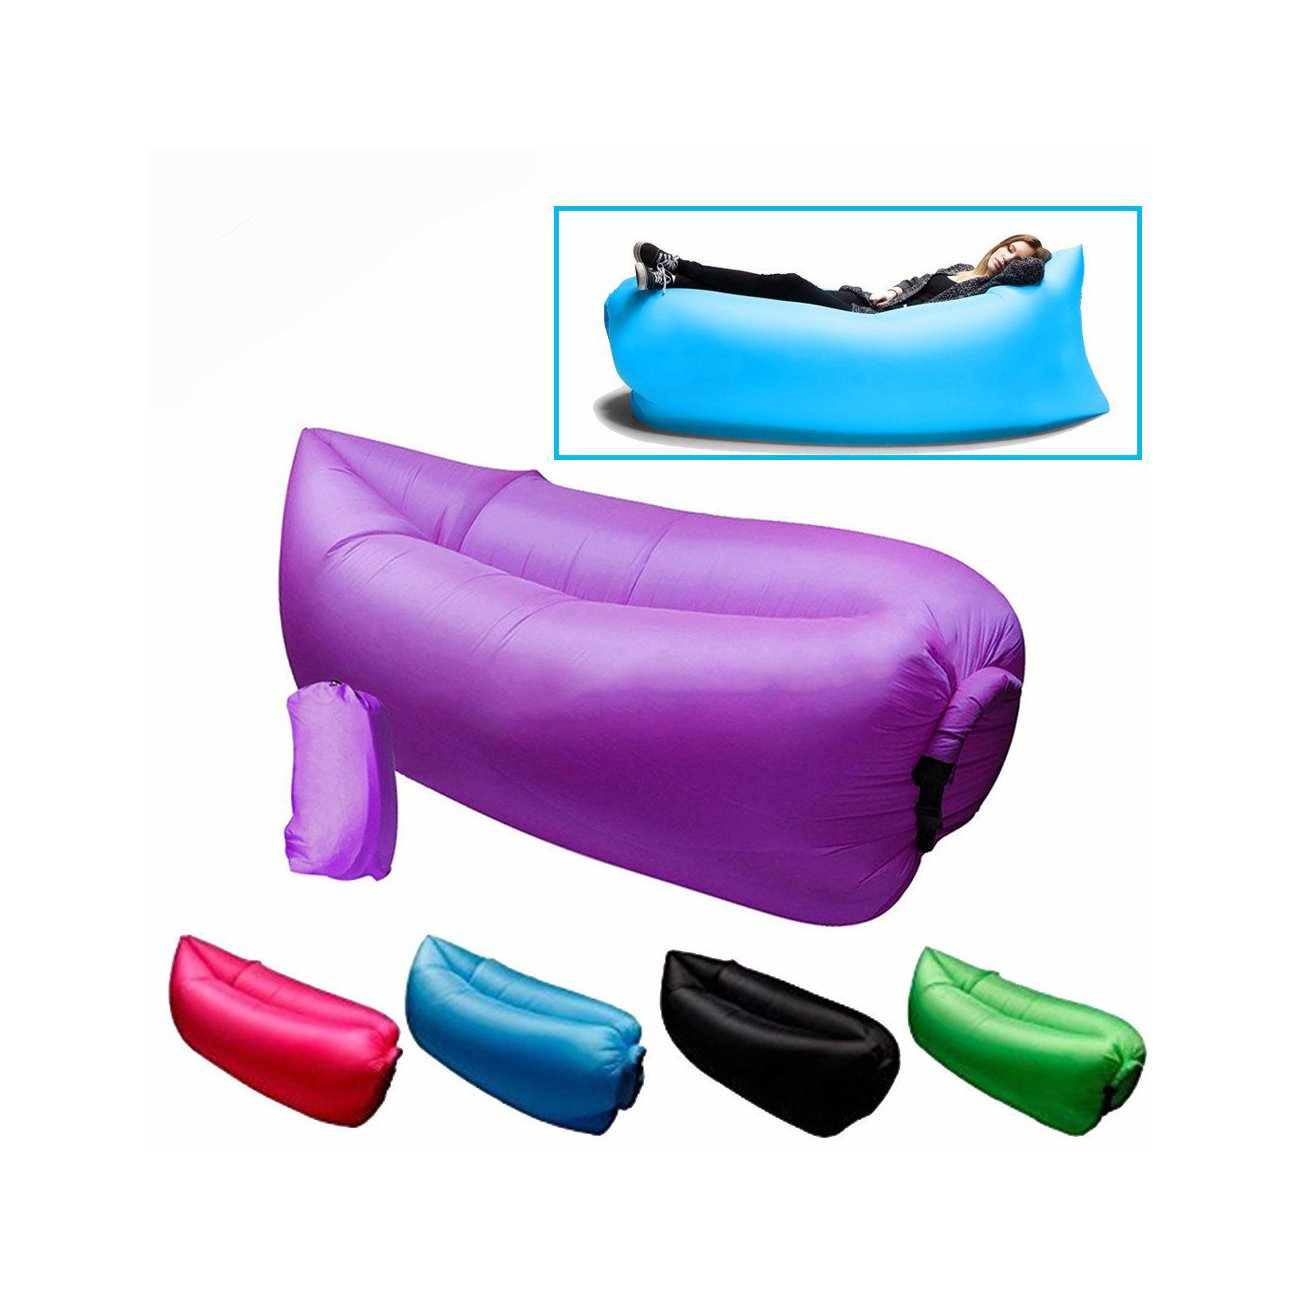 Lazy Bag Inflatable Portable Pumpless Air Bed Barter Hutt